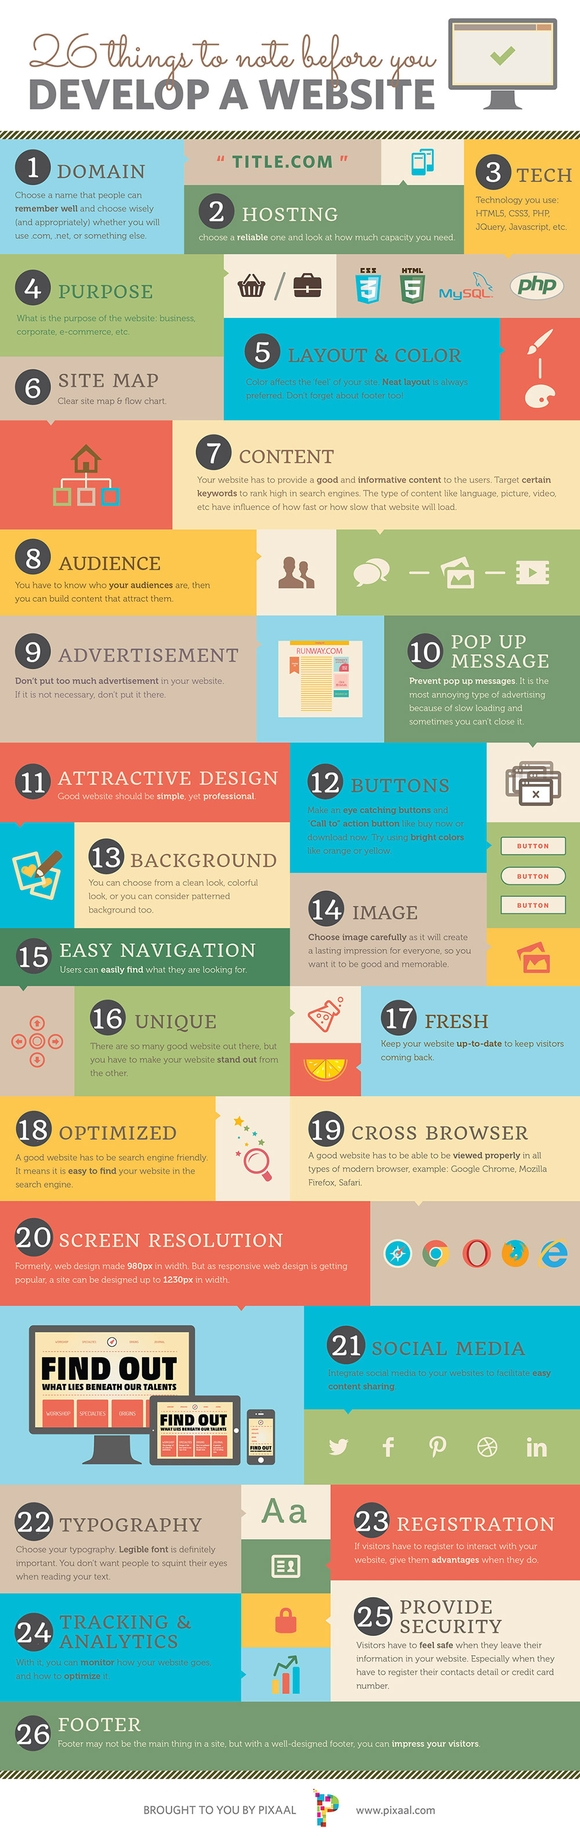 26 things to note before develop website